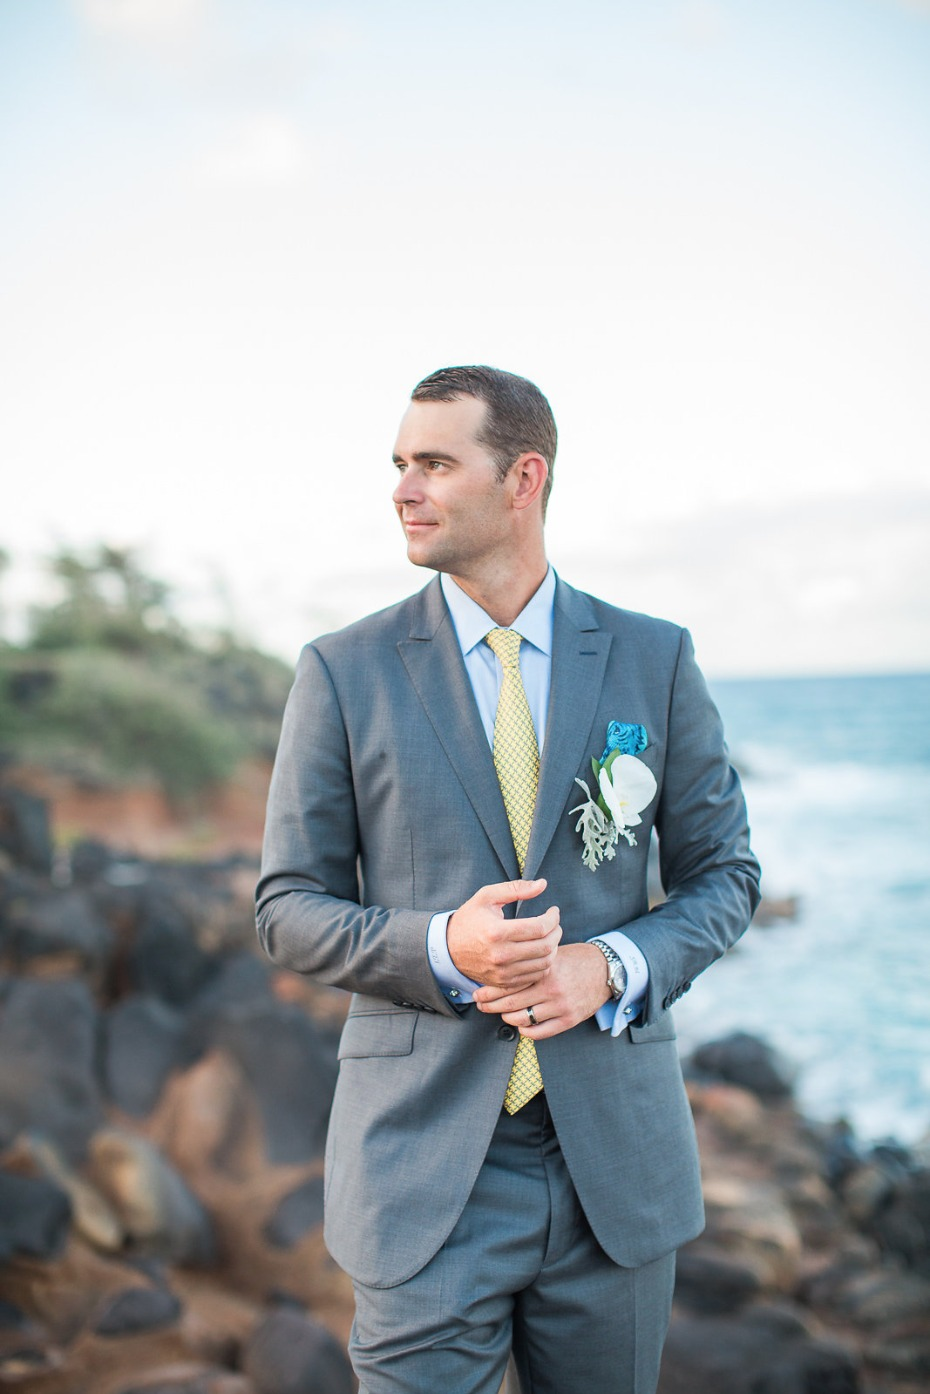 Beachy look for the groom